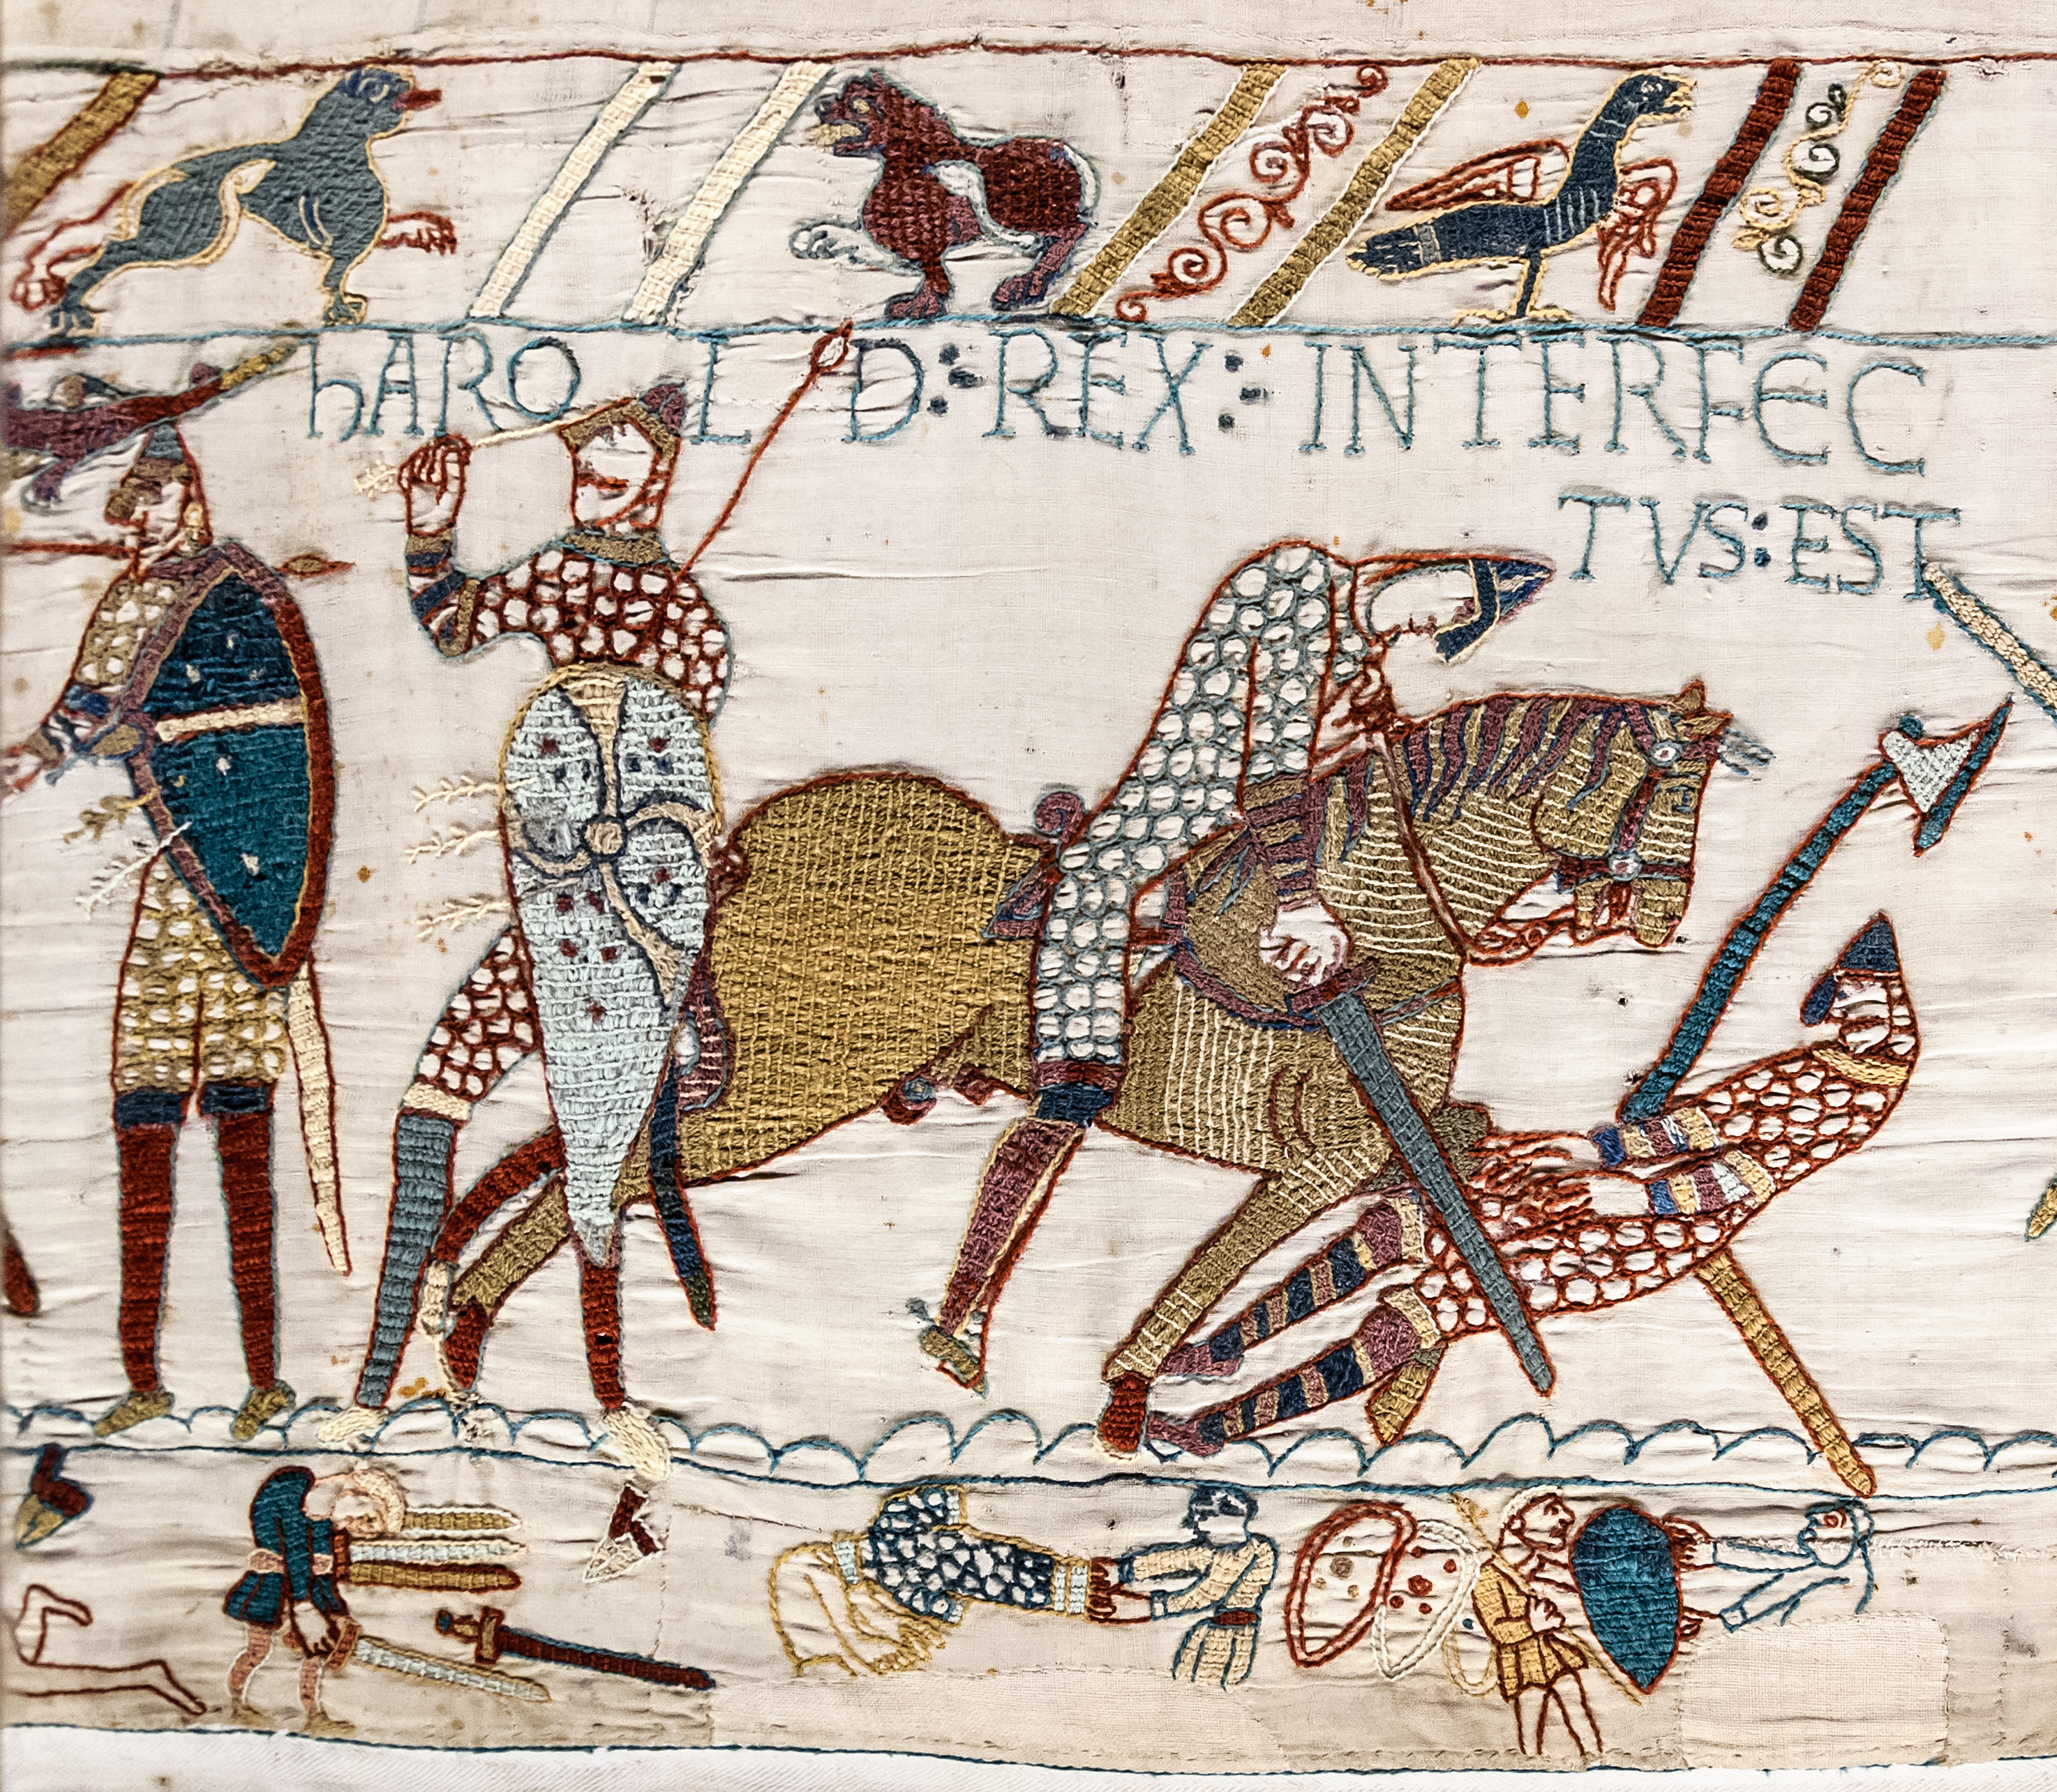 Ahab wasn't the only one to die by a random arrow: the English lost the Battle of Hastings in 1066 when their king, Harold II was the victim of a random arrow. Showing someone as having died with a weapon through the eye was an indignity reserved for liars in the medieval times.